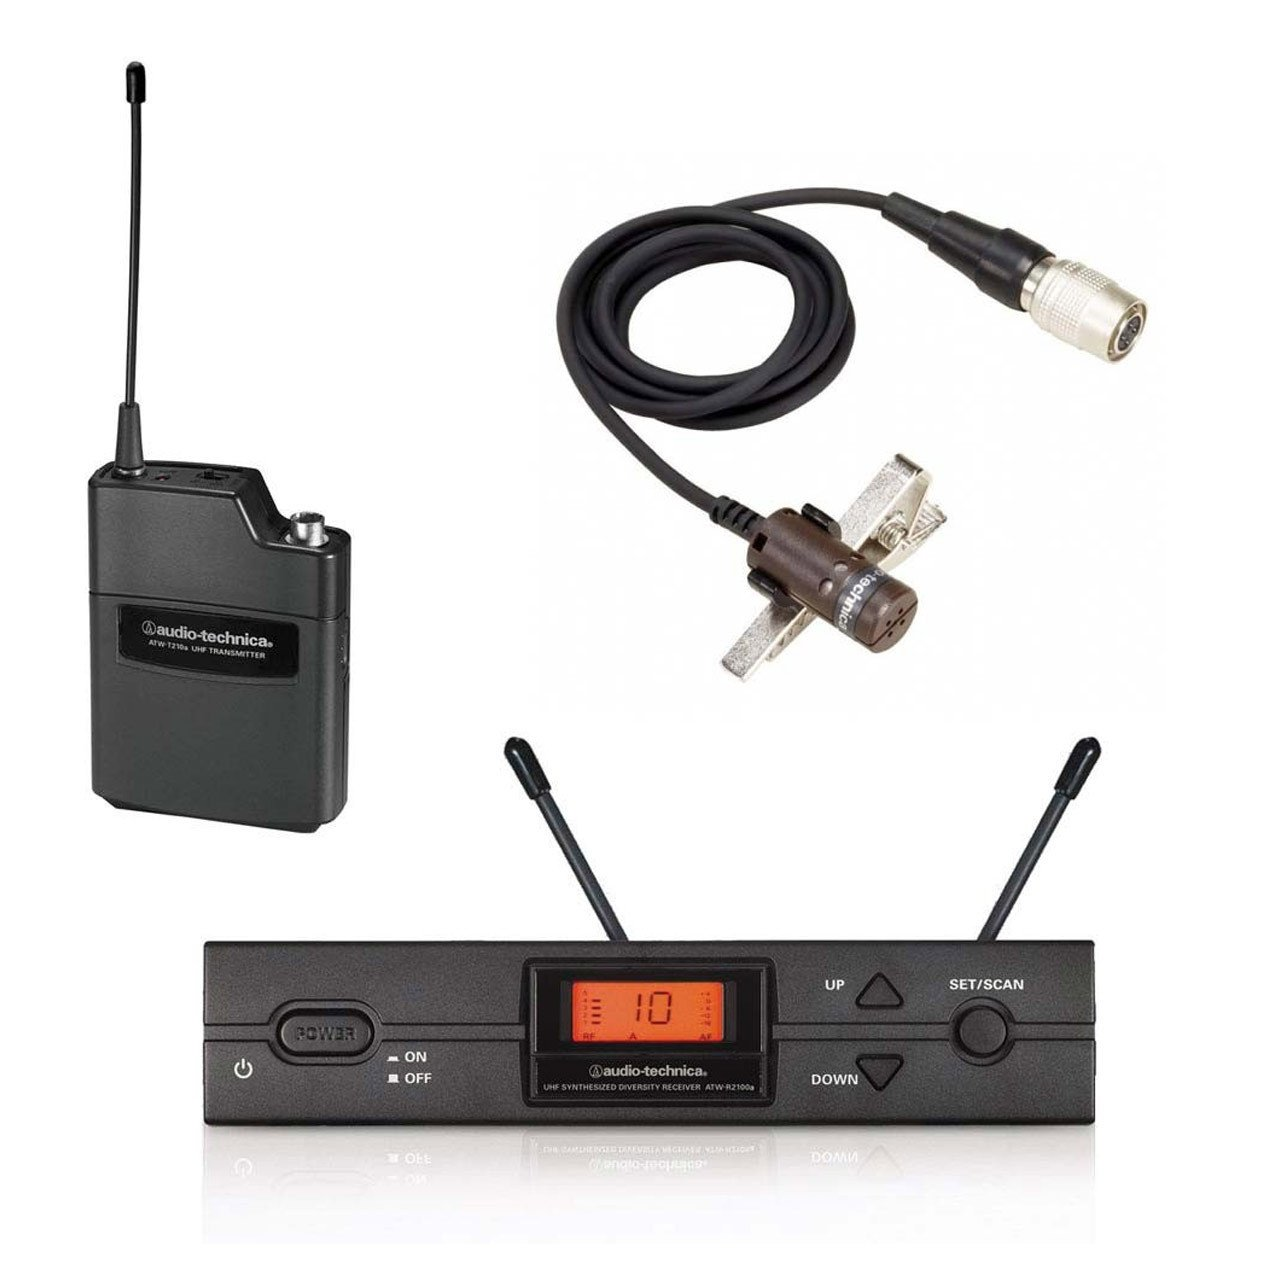 Audio-Technica ATW-2110/LD KIT - 2000 Series Receiver, Lapel Mic and Body Pack Transmitter